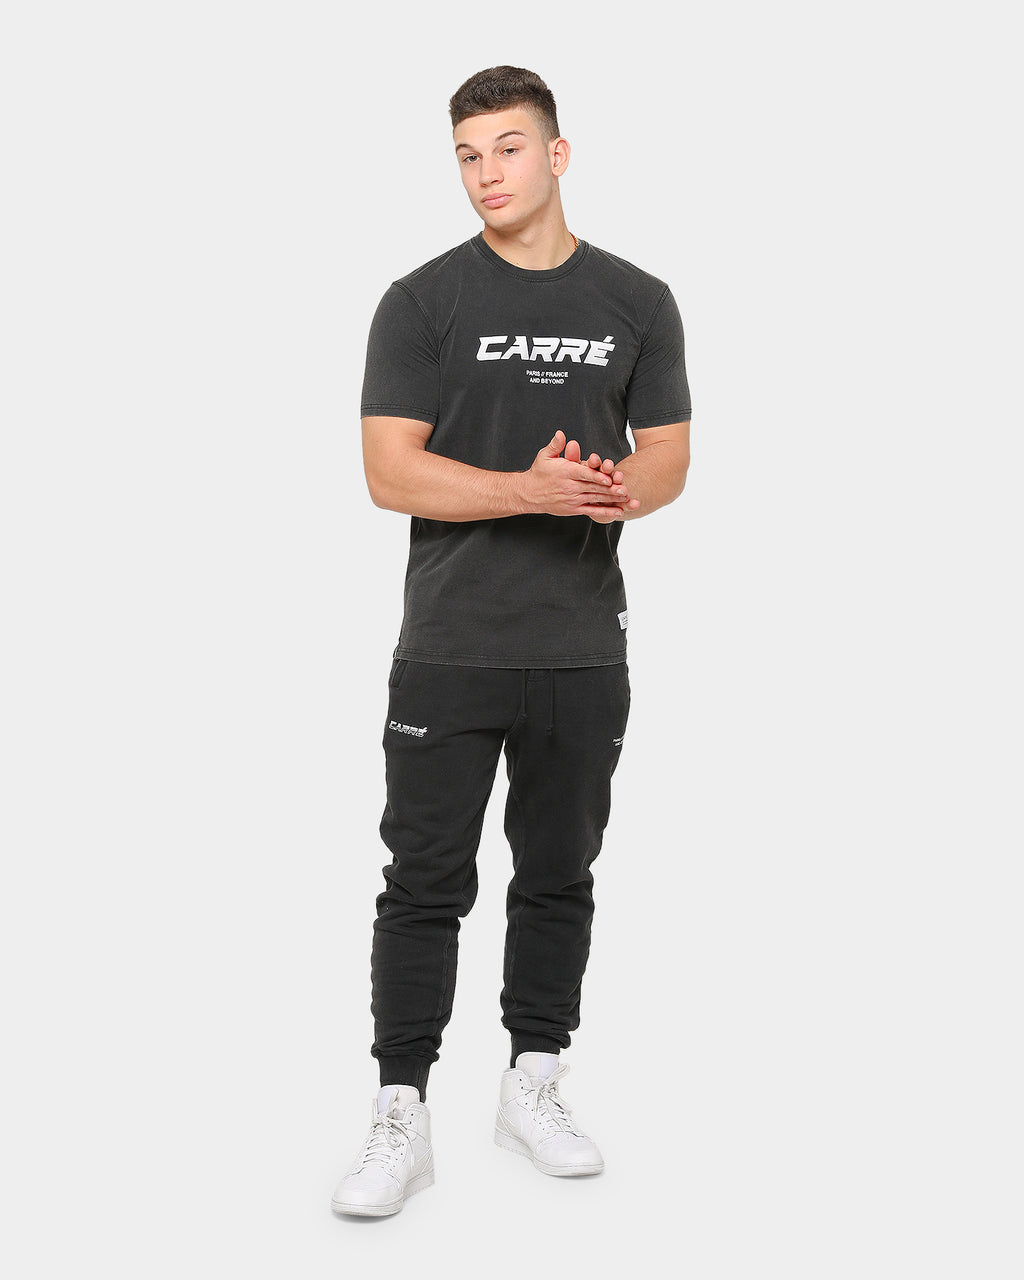 Carré Men's Colorant Classique Vintage Short Sleeve T-Shirt Black